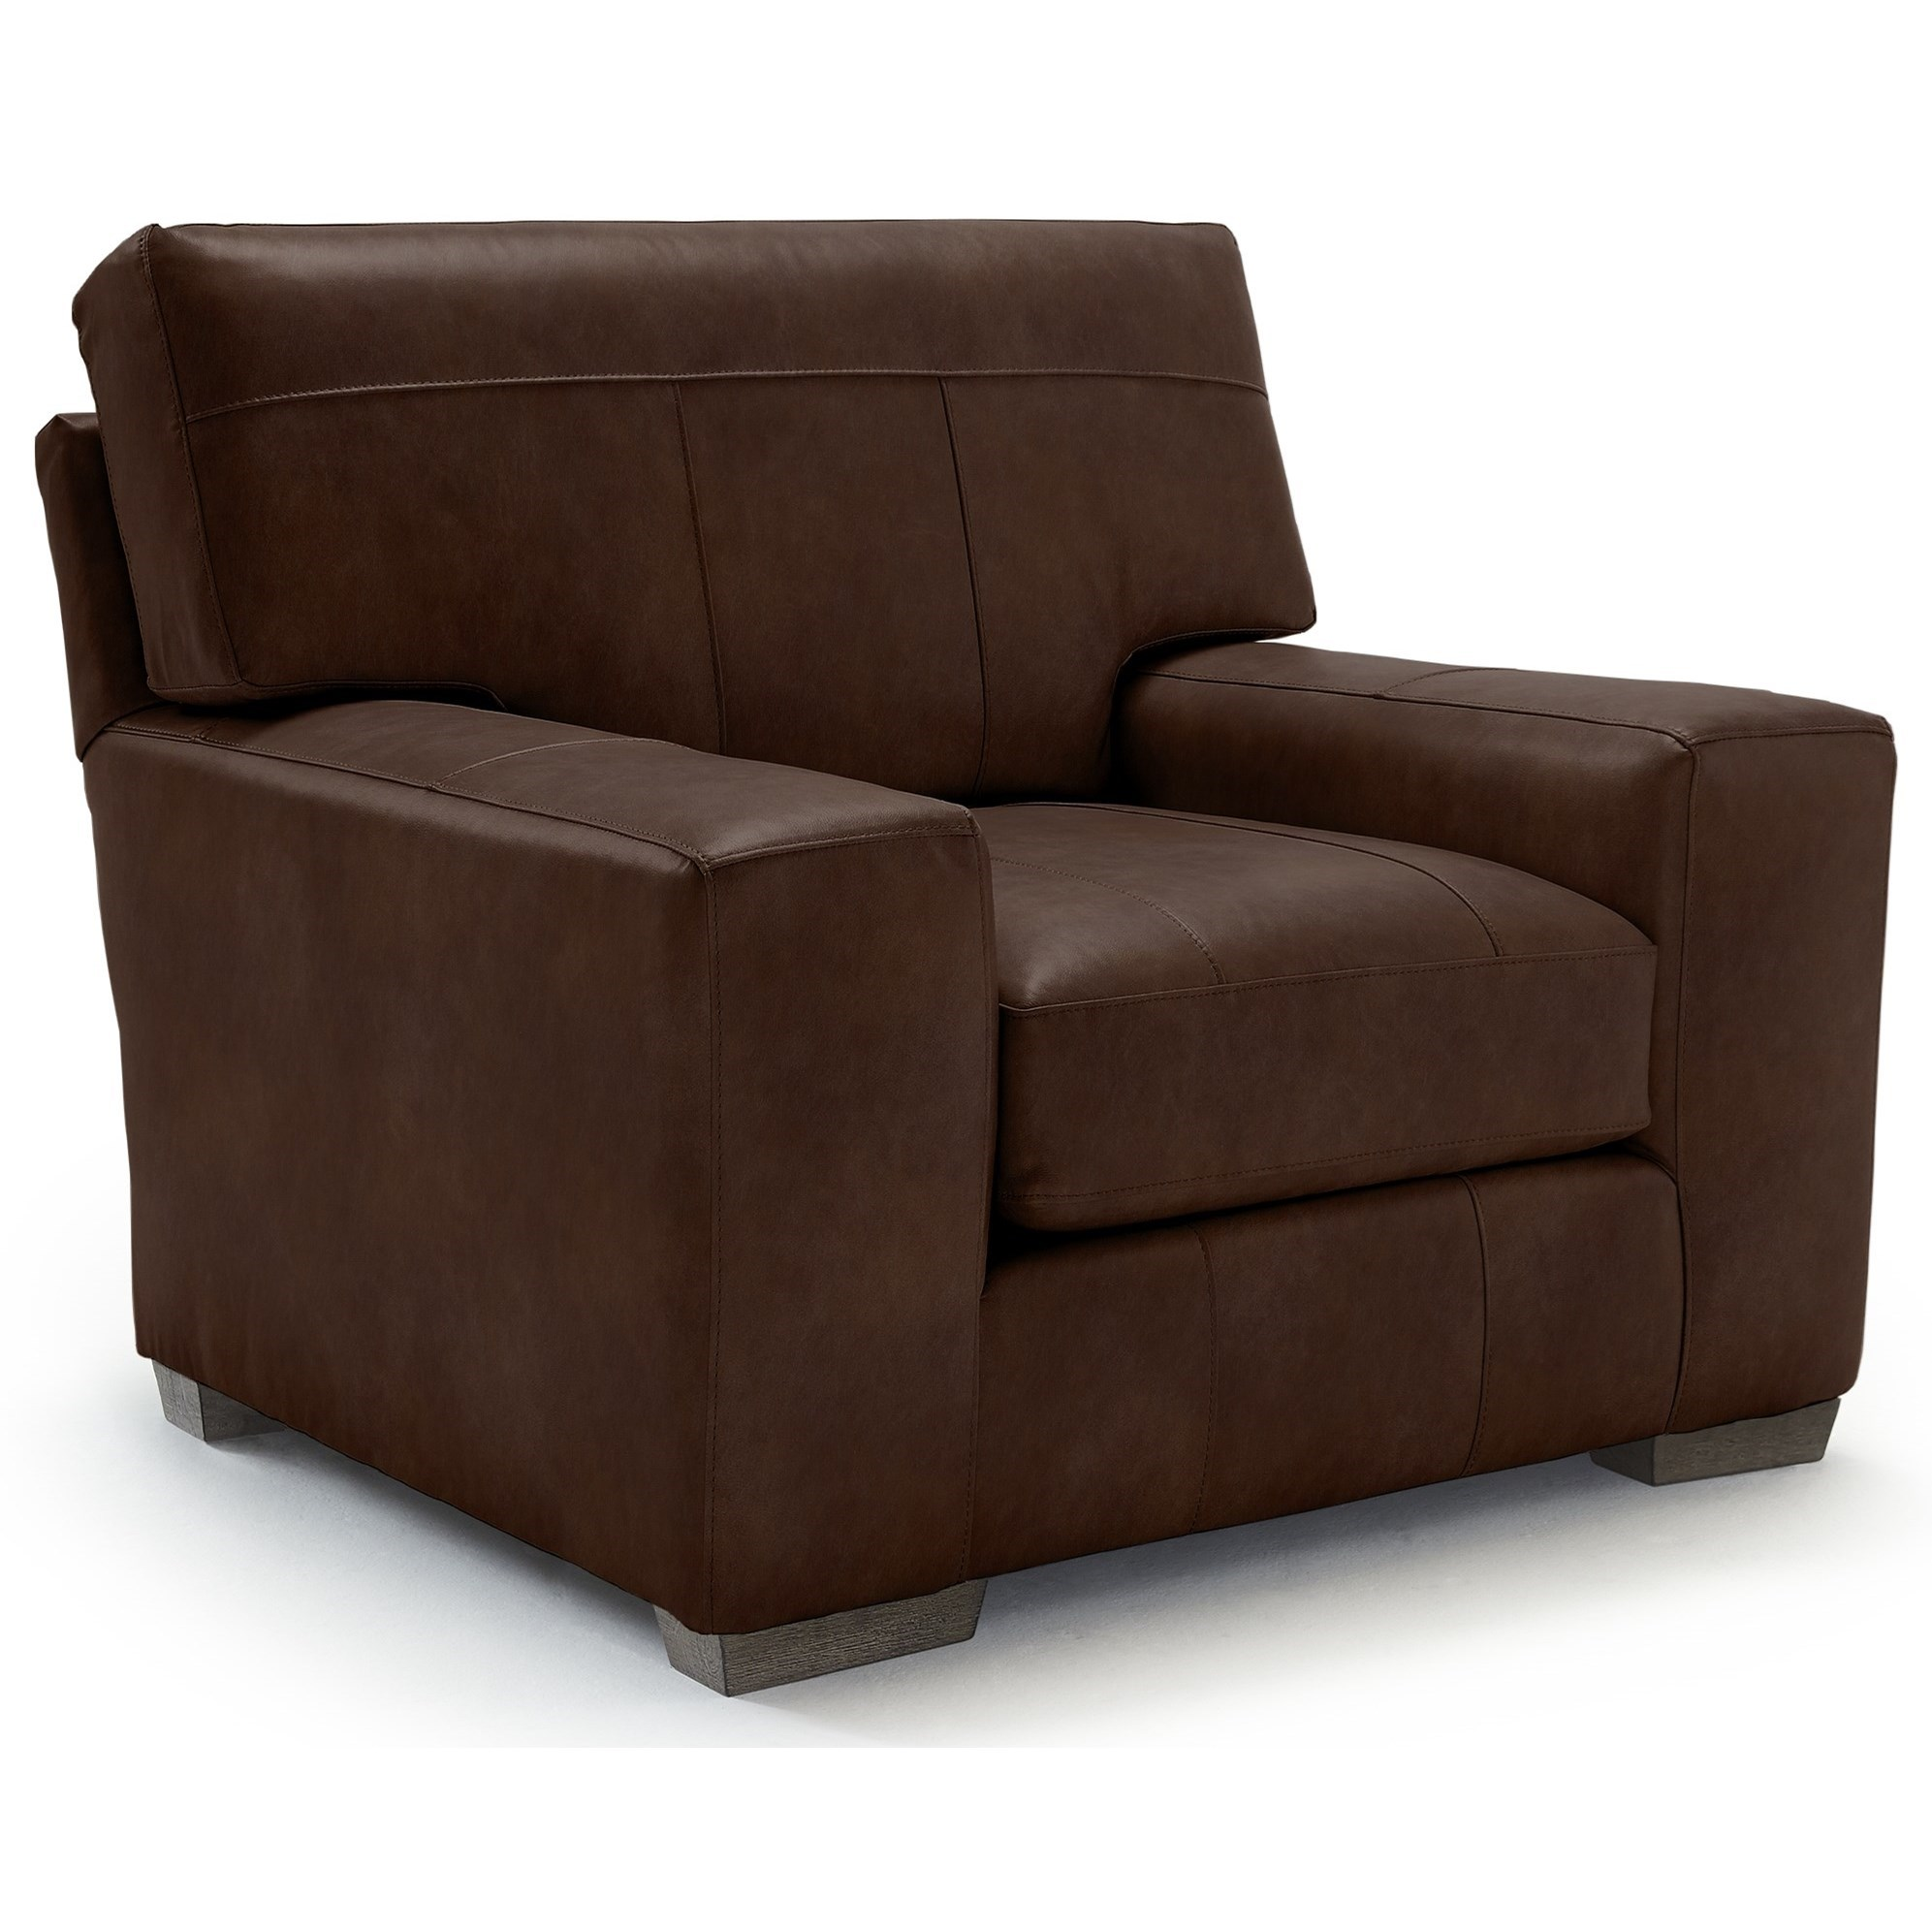 Best Home Furnishings Millport Club Chair - Item Number: C47-73216L